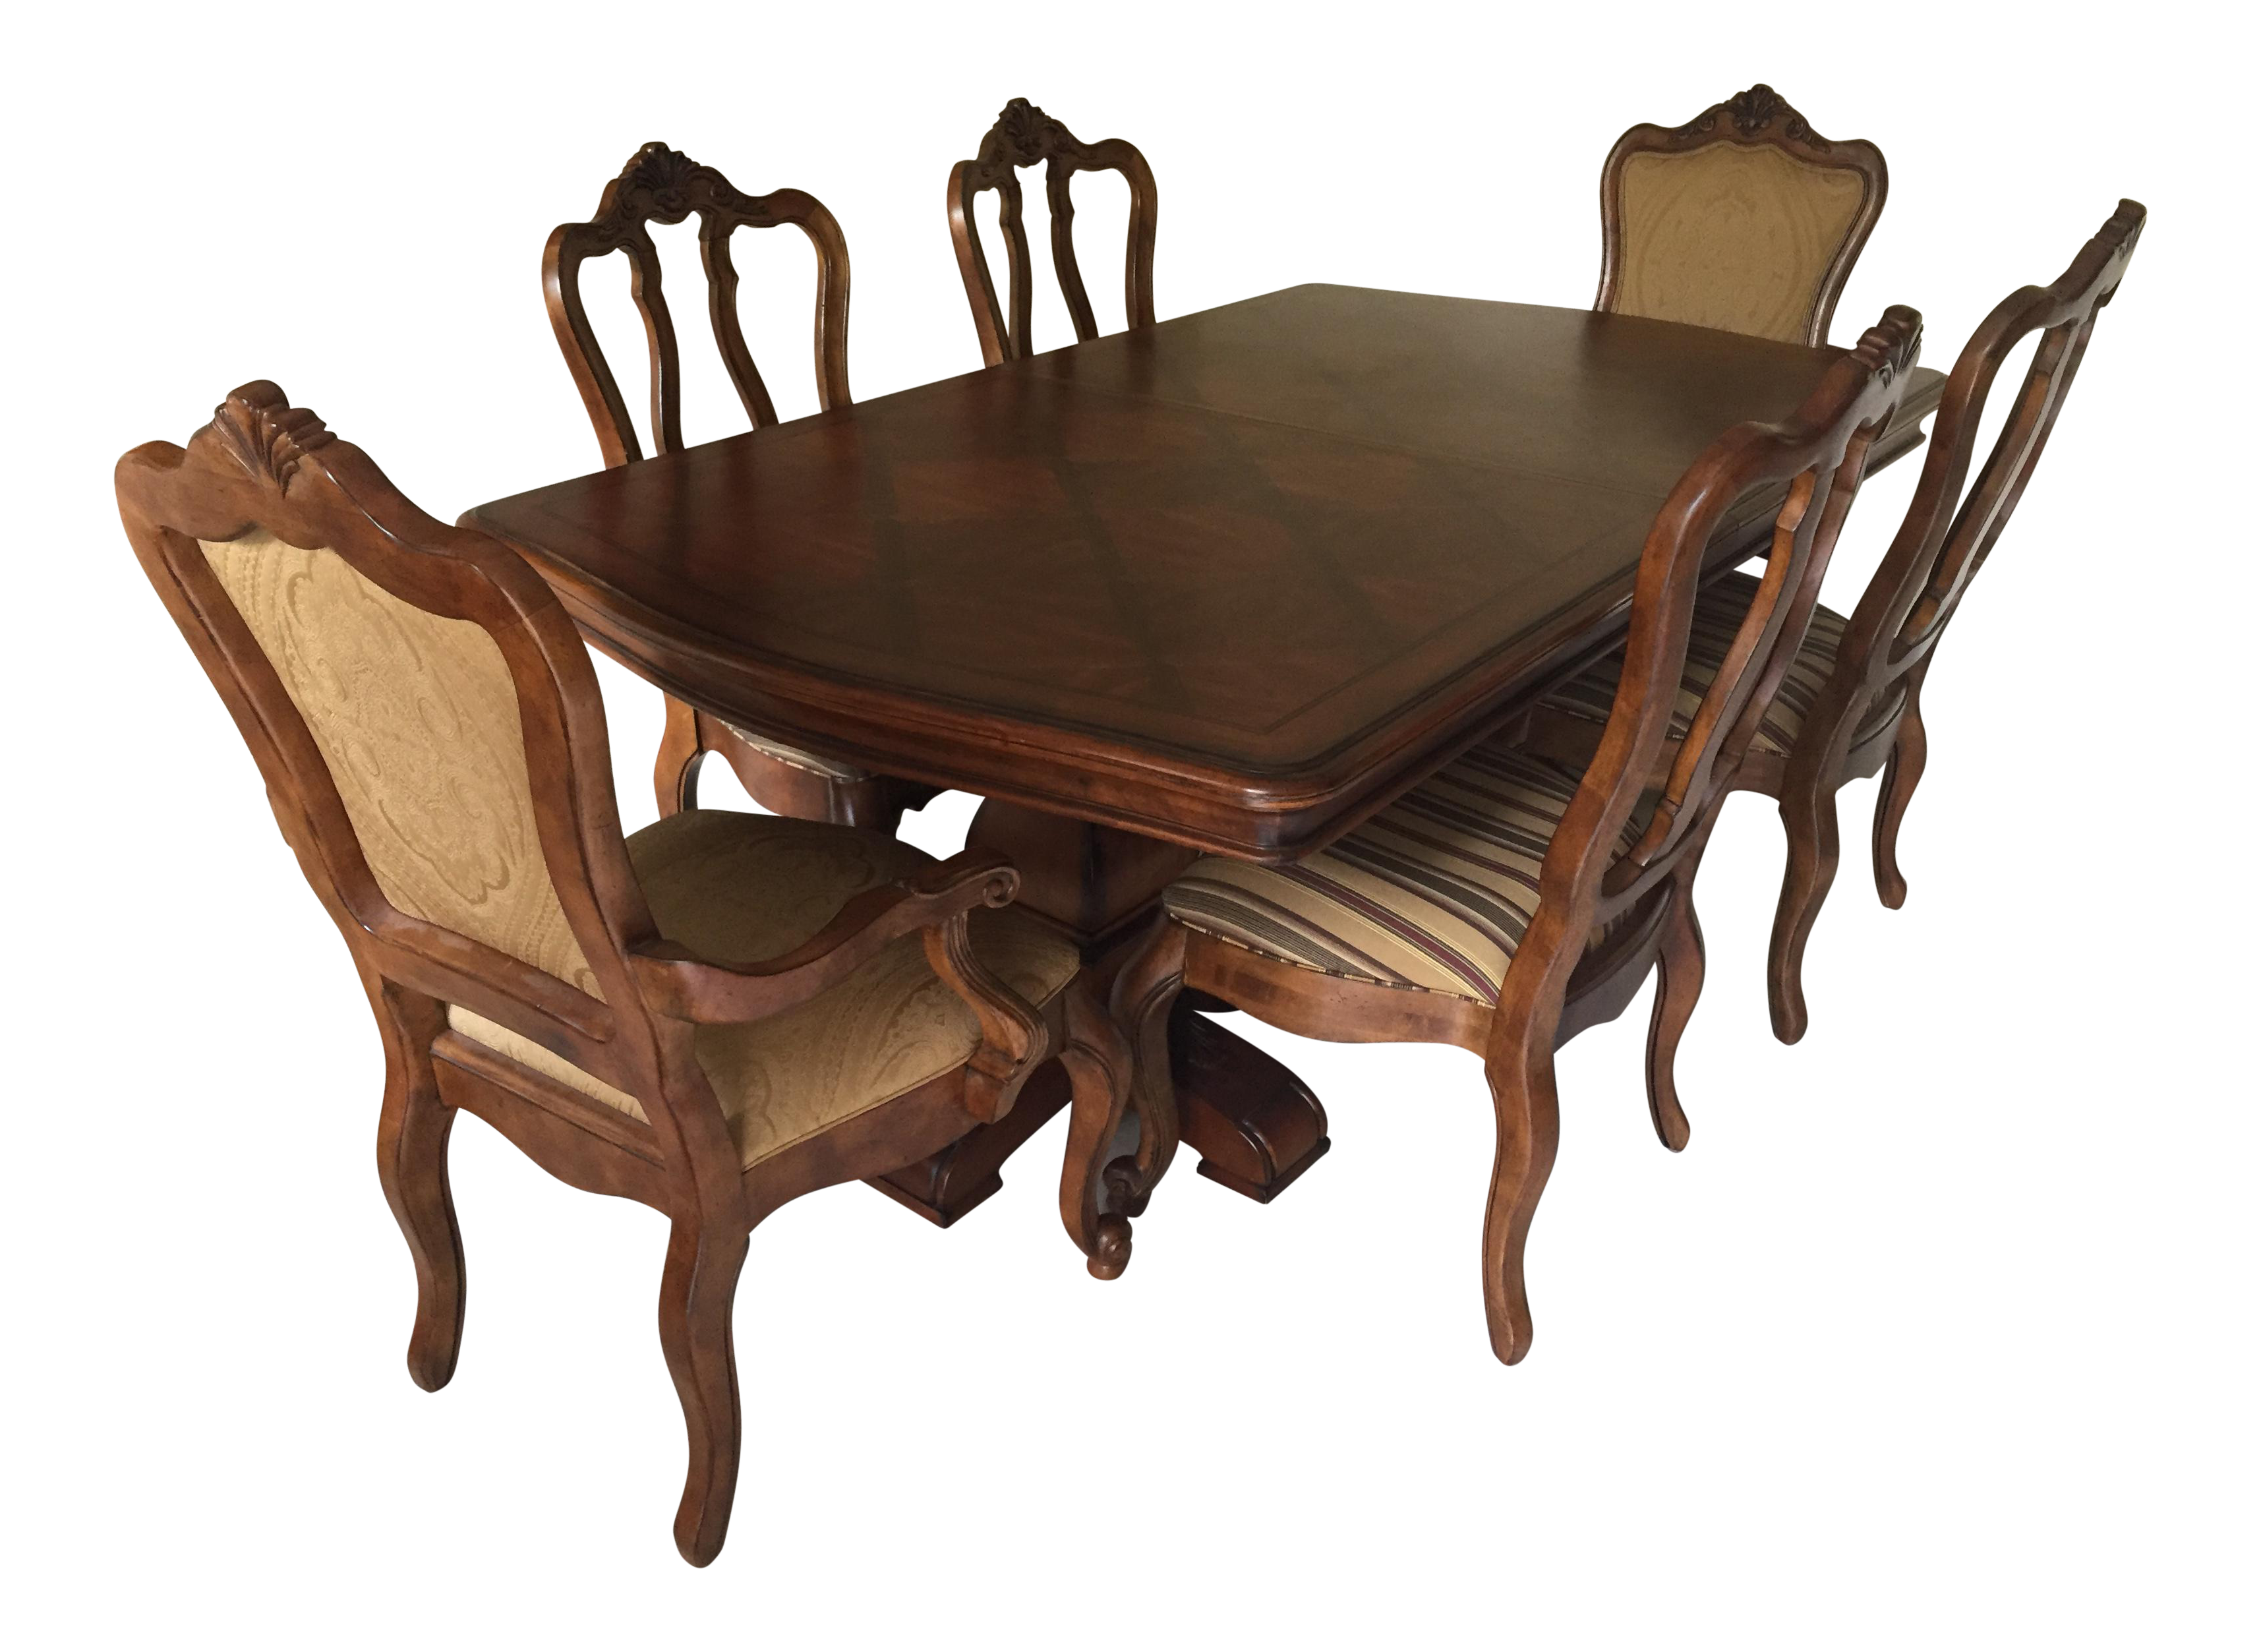 Ethan Allen Tuscany Dining Set Set of 7 Chairish : ethan allen tuscany dining set set of 7 4833aspectfitampwidth640ampheight640 from www.chairish.com size 640 x 640 jpeg 34kB